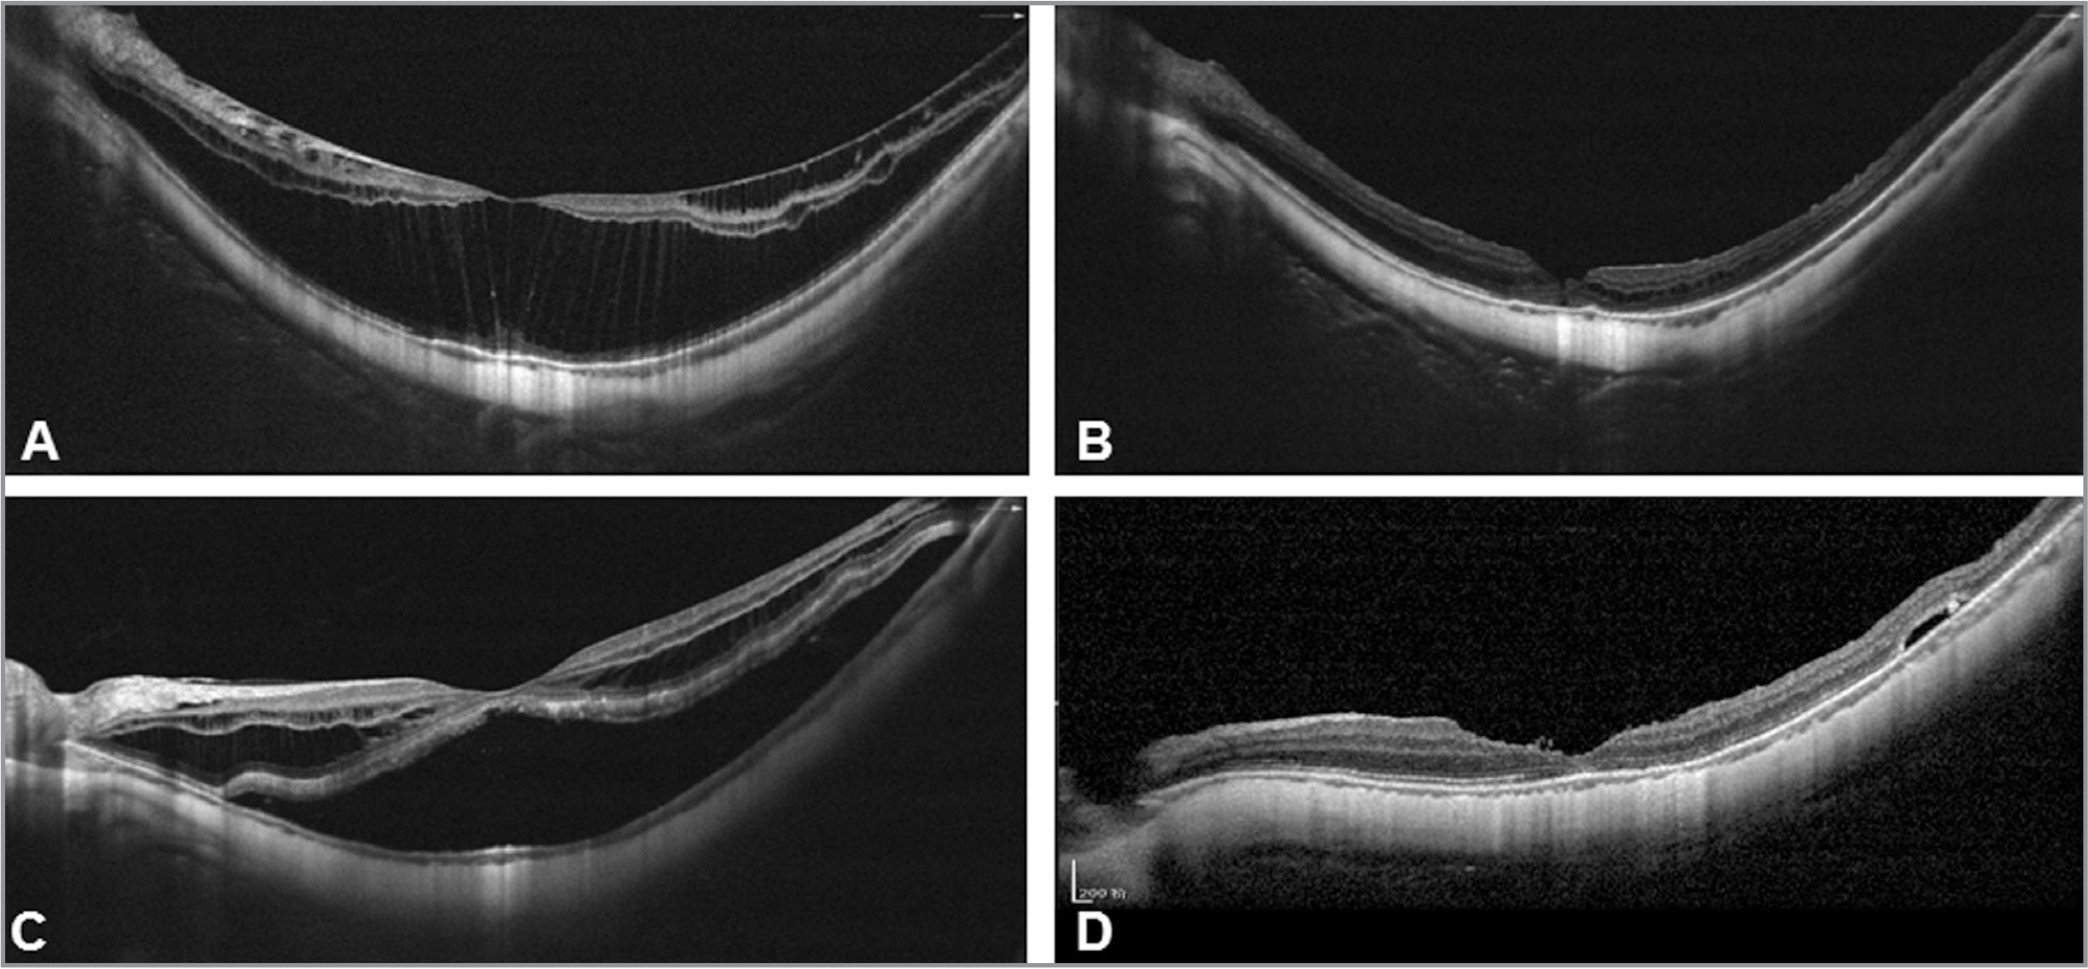 Representative horizontal optical coherence tomography (OCT) images of eyes with myopic foveoschisis (MF) treated by 27-gauge or 25-gauge vitrectomy. Case 1: (A) Preoperative OCT showed foveoschisis. Snellen vision acuity was 20/200. (B) One month after 27-gauge vitrectomy with internal limiting membrane (ILM) peeling and air tamponade, the OCT revealed resolution of foveoschisis. The patient's vision improved to 20/50. Case 2: (C) Preoperative OCT showed foveoschisis with foveal detachment. Snellen vision acuity was 20/200. (D) Six months after 25-gauge vitrectomy with ILM peeling and air tamponade, the OCT revealed resolution of foveoschisis with foveal reattachment. The patient's vision improved to 20/80.